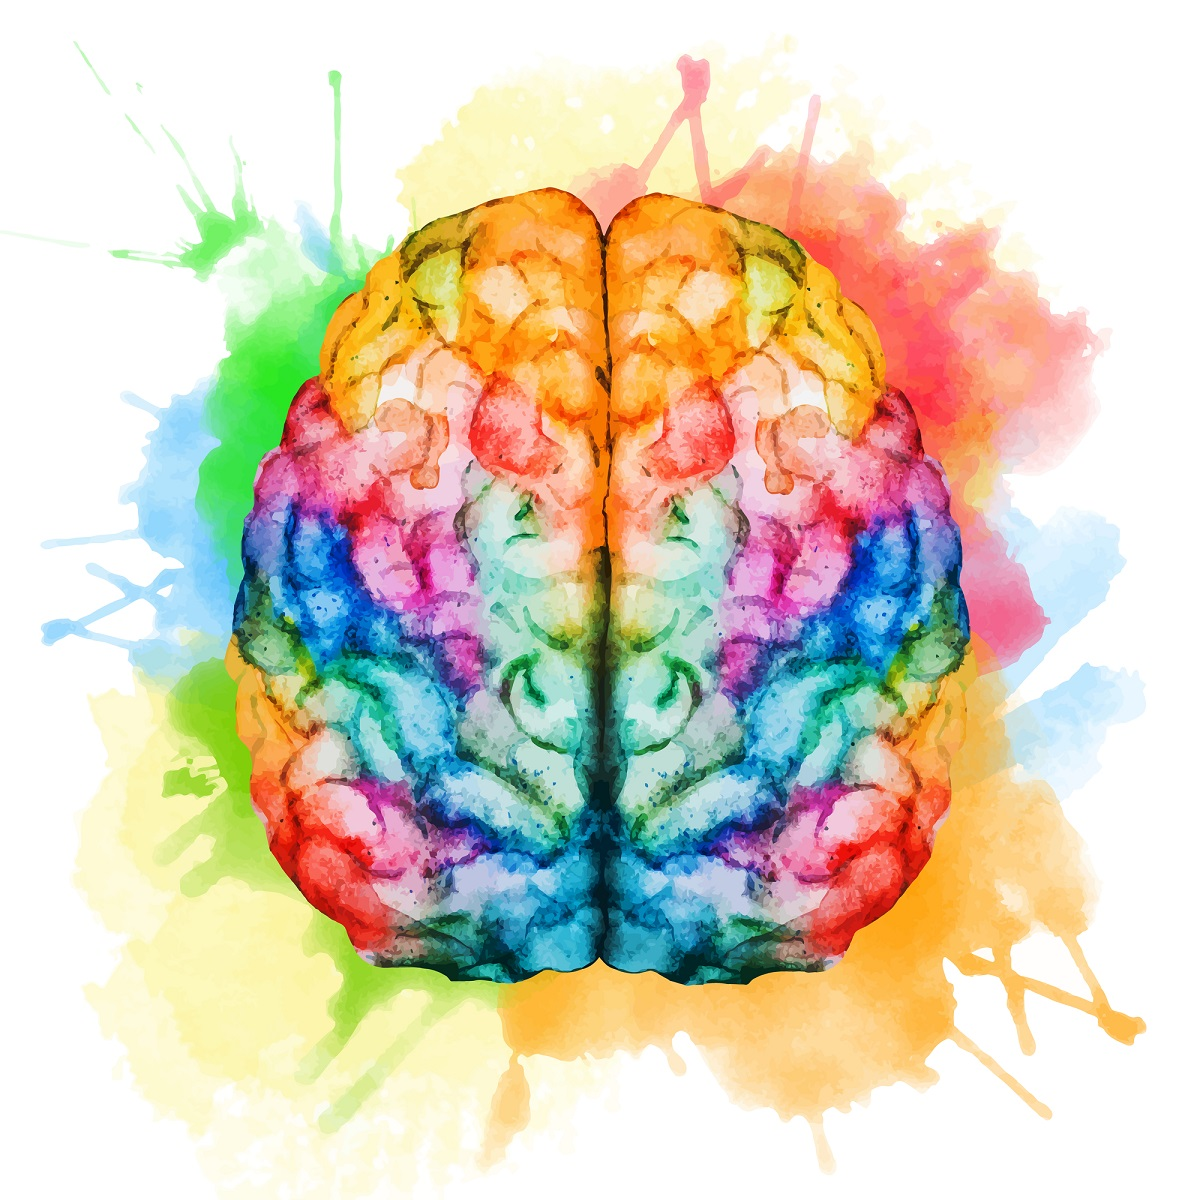 increase memory power and concentration